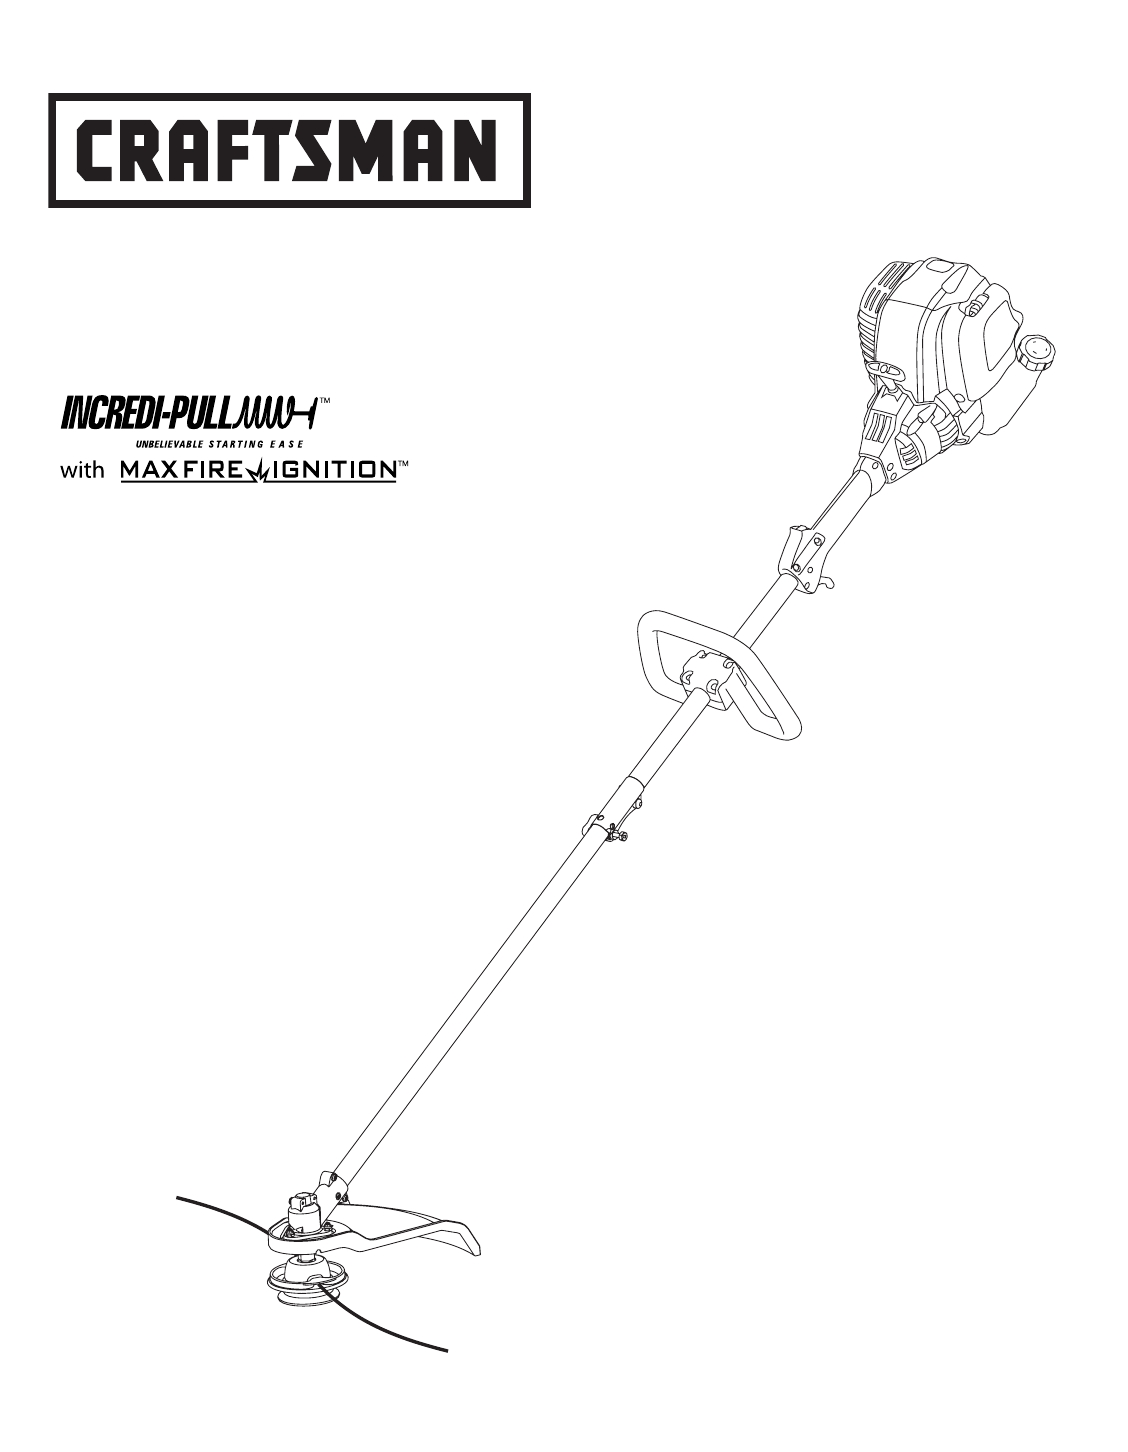 Echo Srm 225 String Trimmer additionally Stihl Fs 44 Parts Diagram as well Zama Carb Assembly For Stihl Ts410 also Carburetor Assembly in addition 962. on weed eater trimmer parts